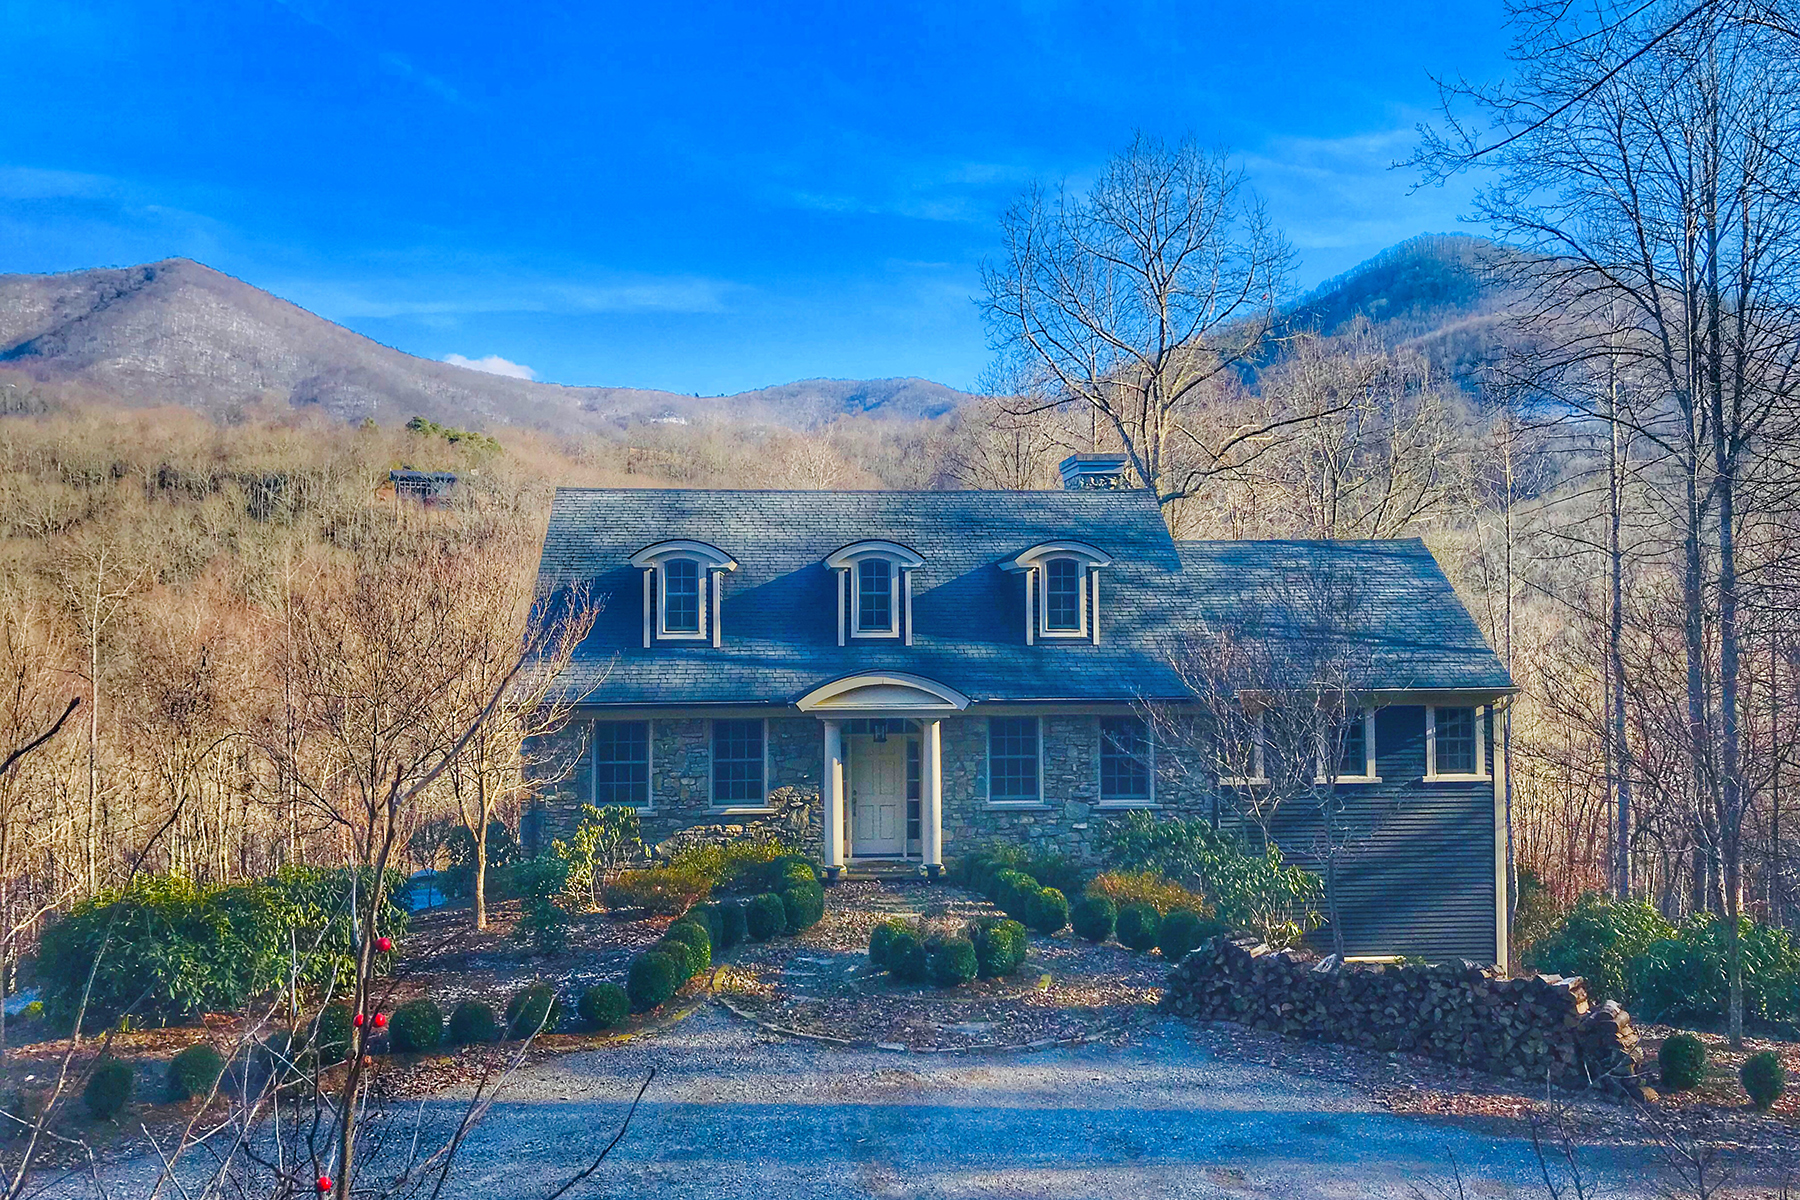 Single Family Homes for Active at BALSAM MOUNTAIN PRESERVE 401 High Line Rd Sylva, North Carolina 28779 United States